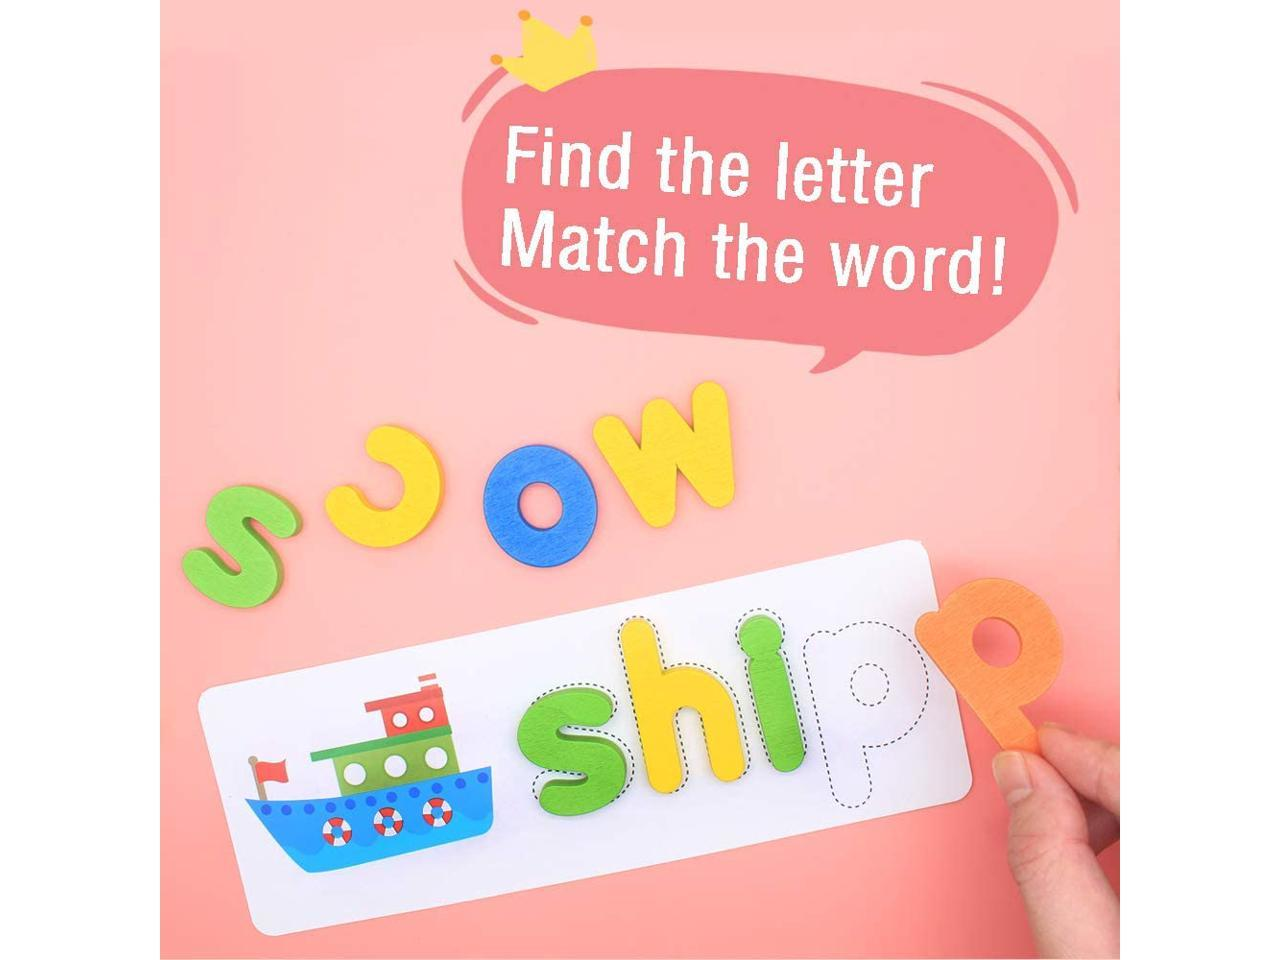 SPABUOG See and Spell Learning Toys Sight Words Games Matching Letter Puzzles Montessori Preschool Educational Toys for Kids Boys Girls Age 3 Years Old 30 Flash Cards and 52 Wooden Alphabet Blocks